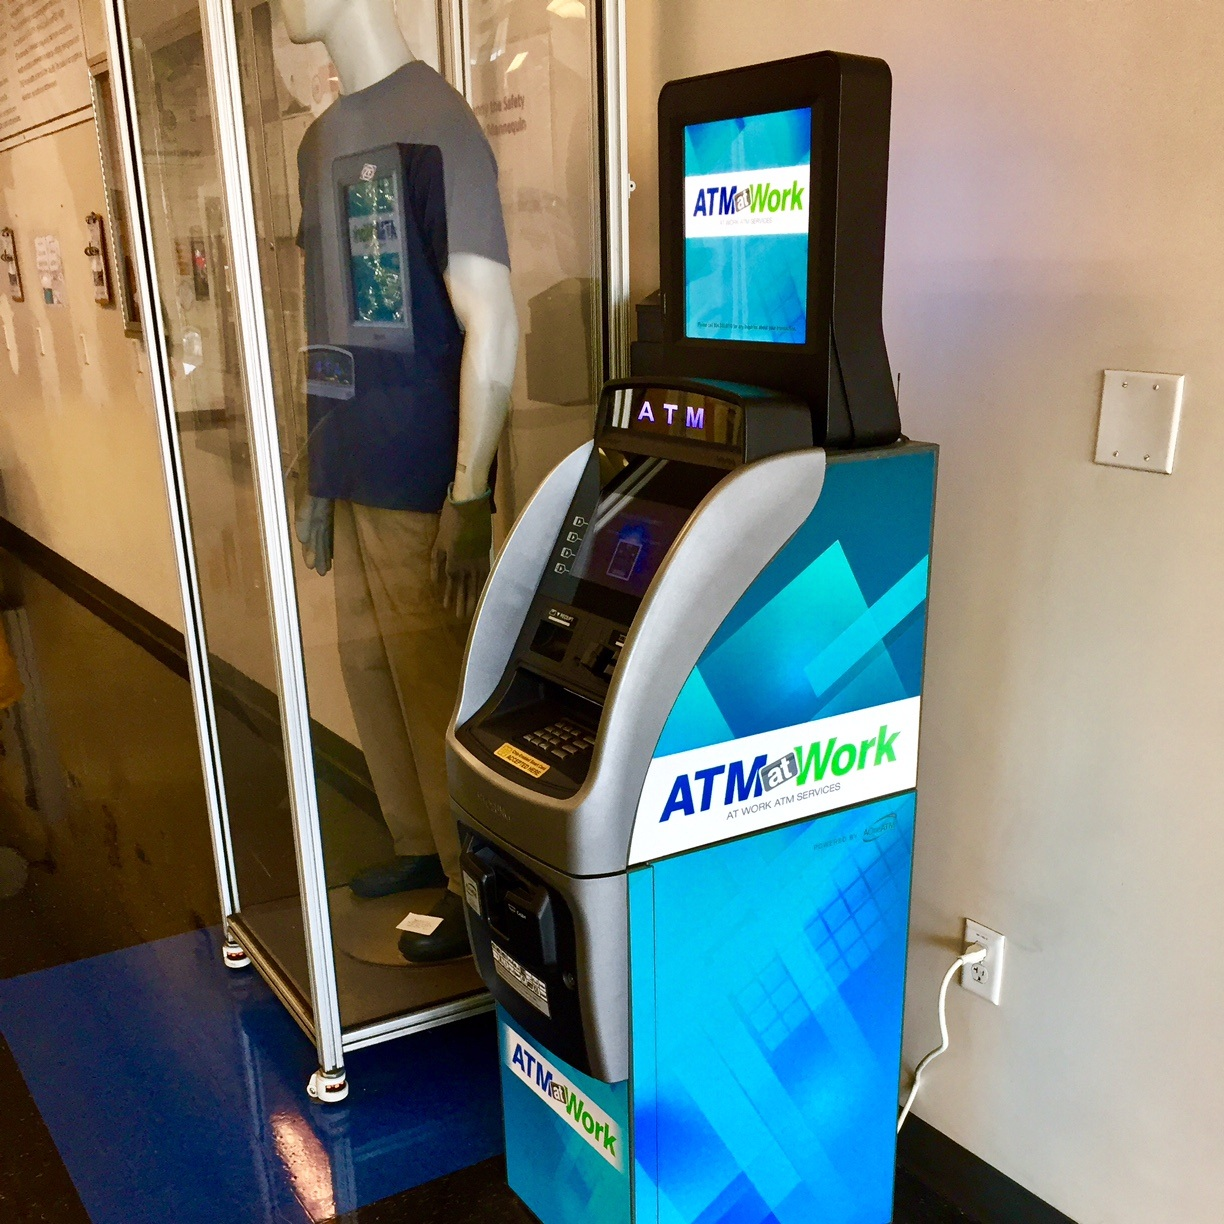 Small Footprint ATM at Work Lobby ATM